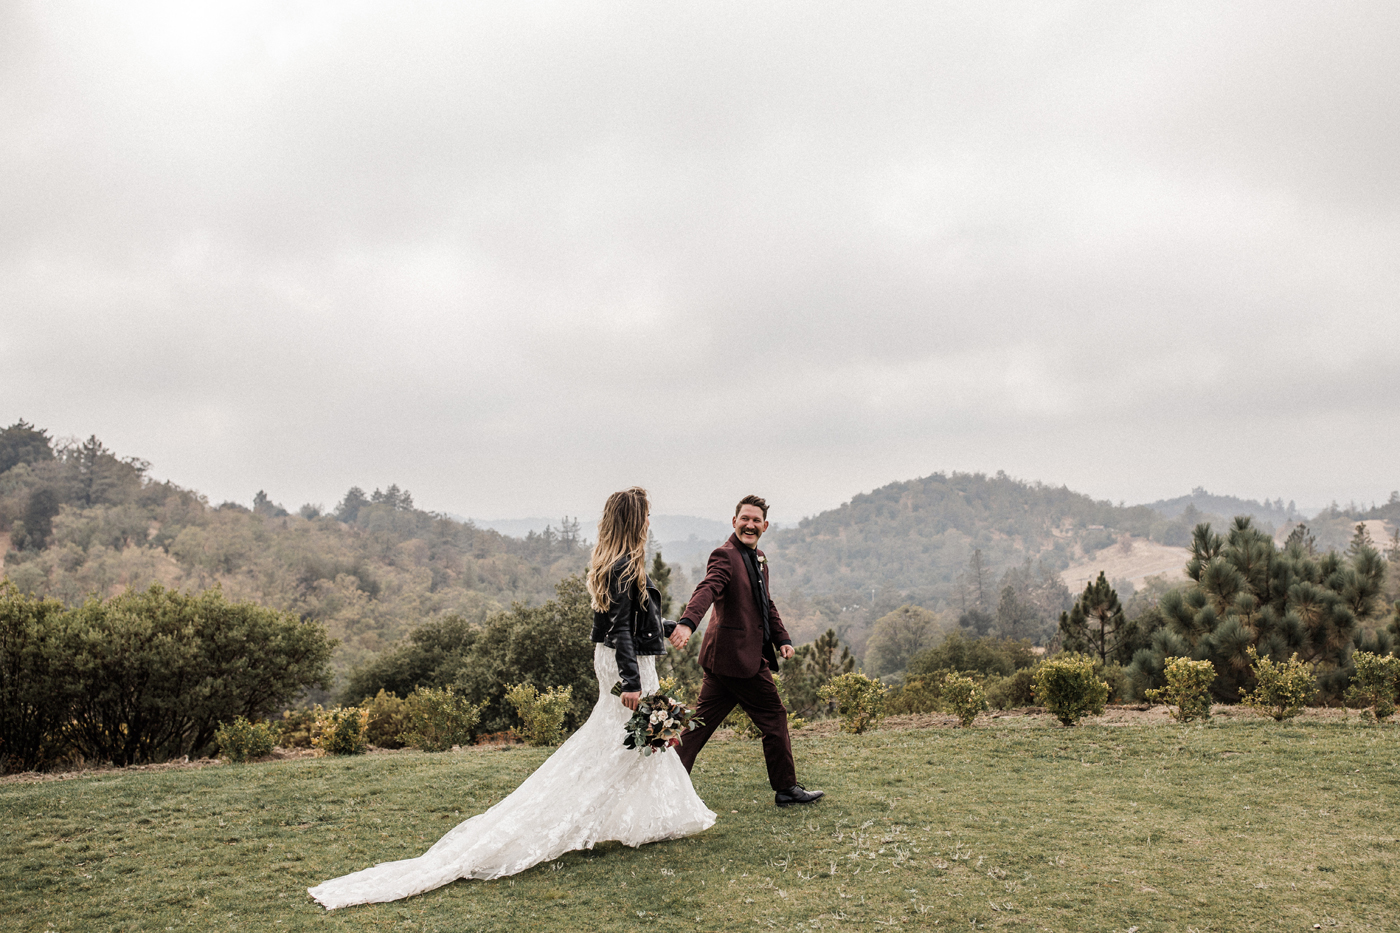 LaurenAndMatt-631.jpg